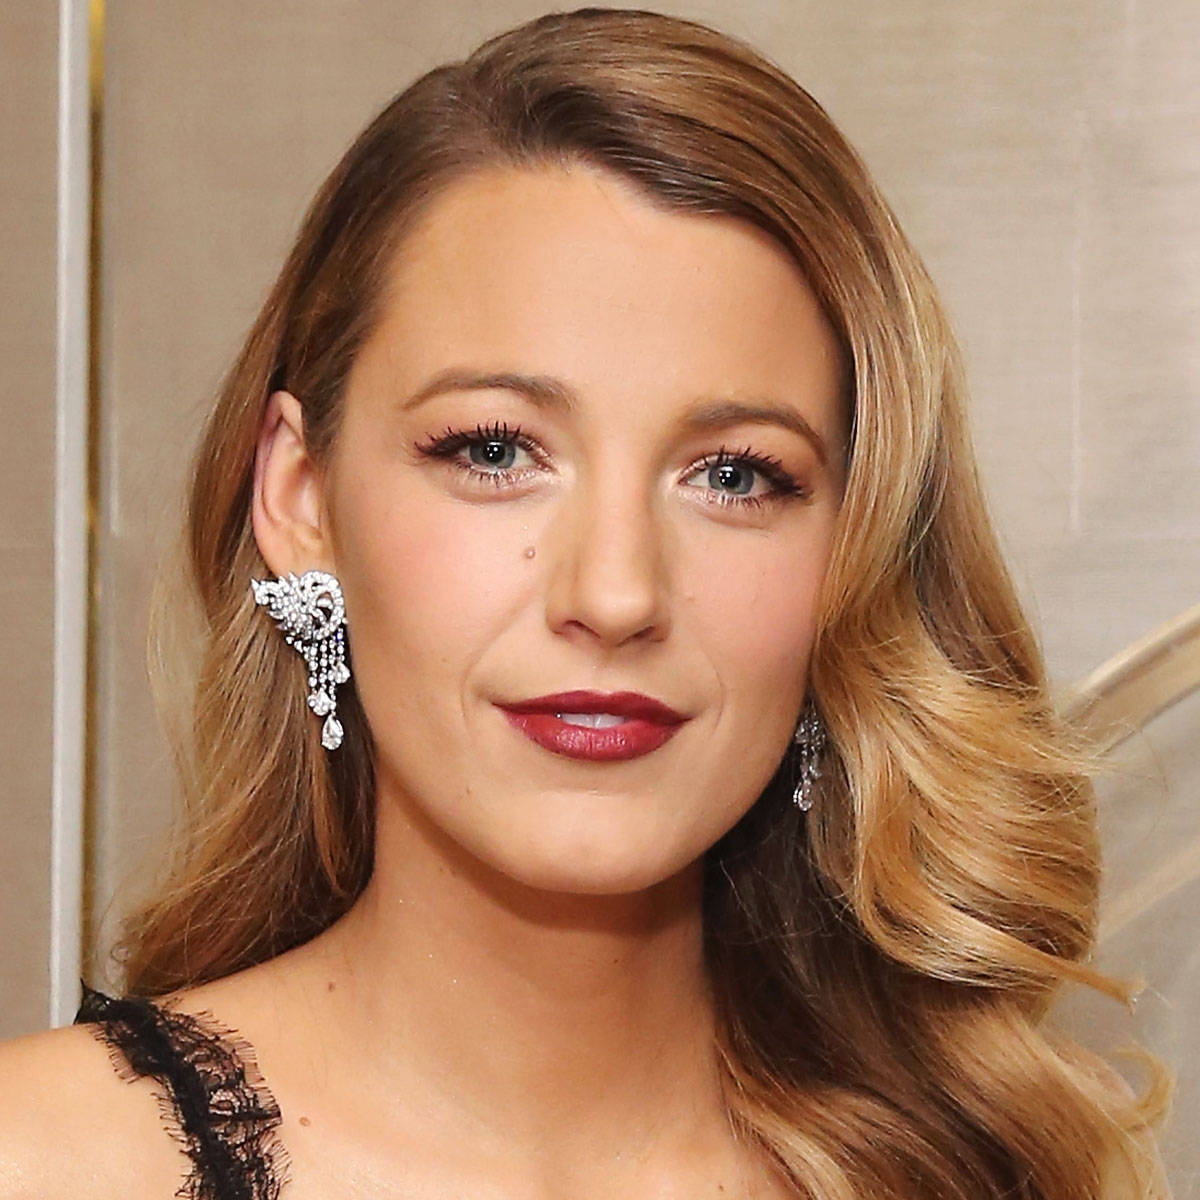 blake lively red dress makeup - photo #33